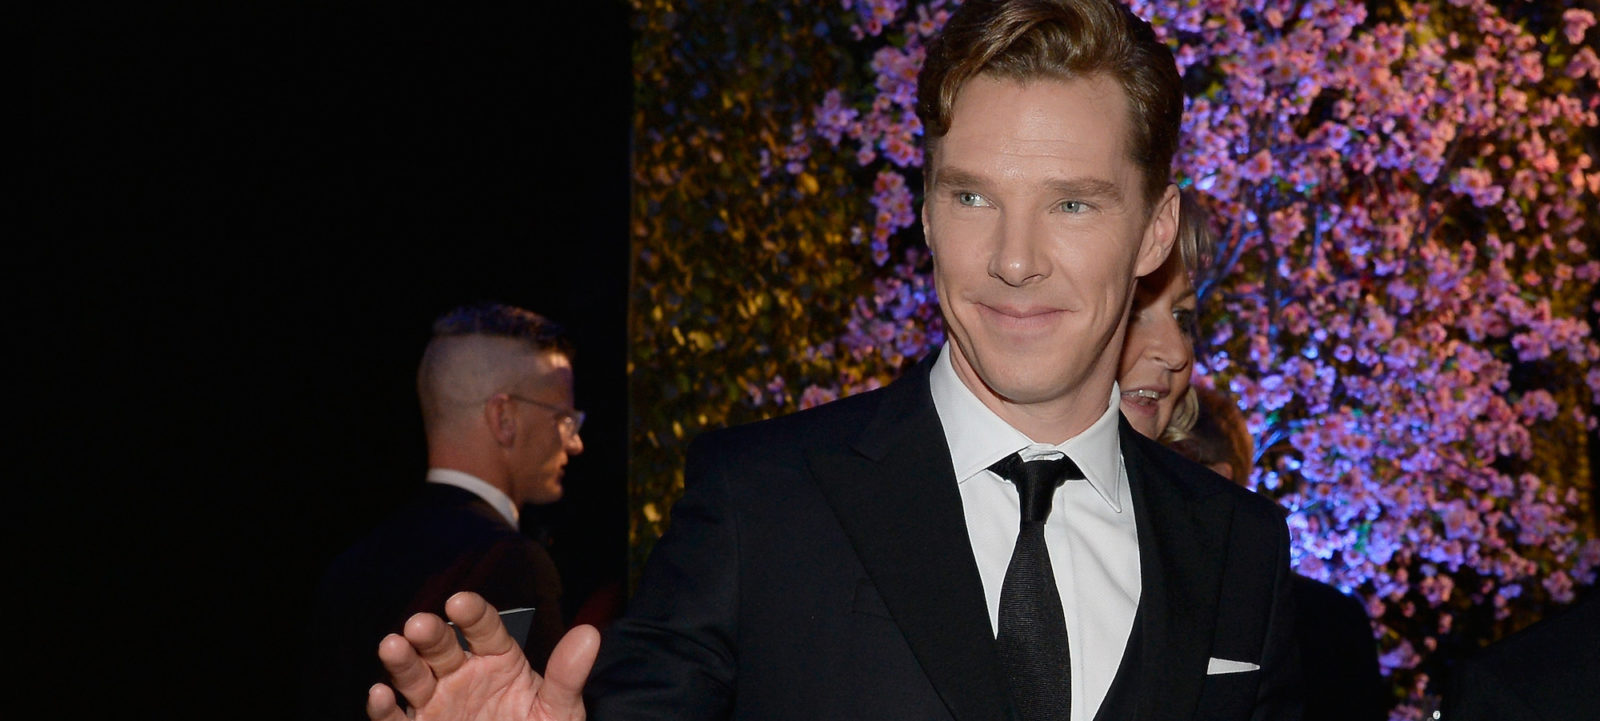 Actor Benedict Cumberbatch attends the Oscars Governors Ball at Hollywood & Highland Center on March 2, 2014 in Hollywood, California.